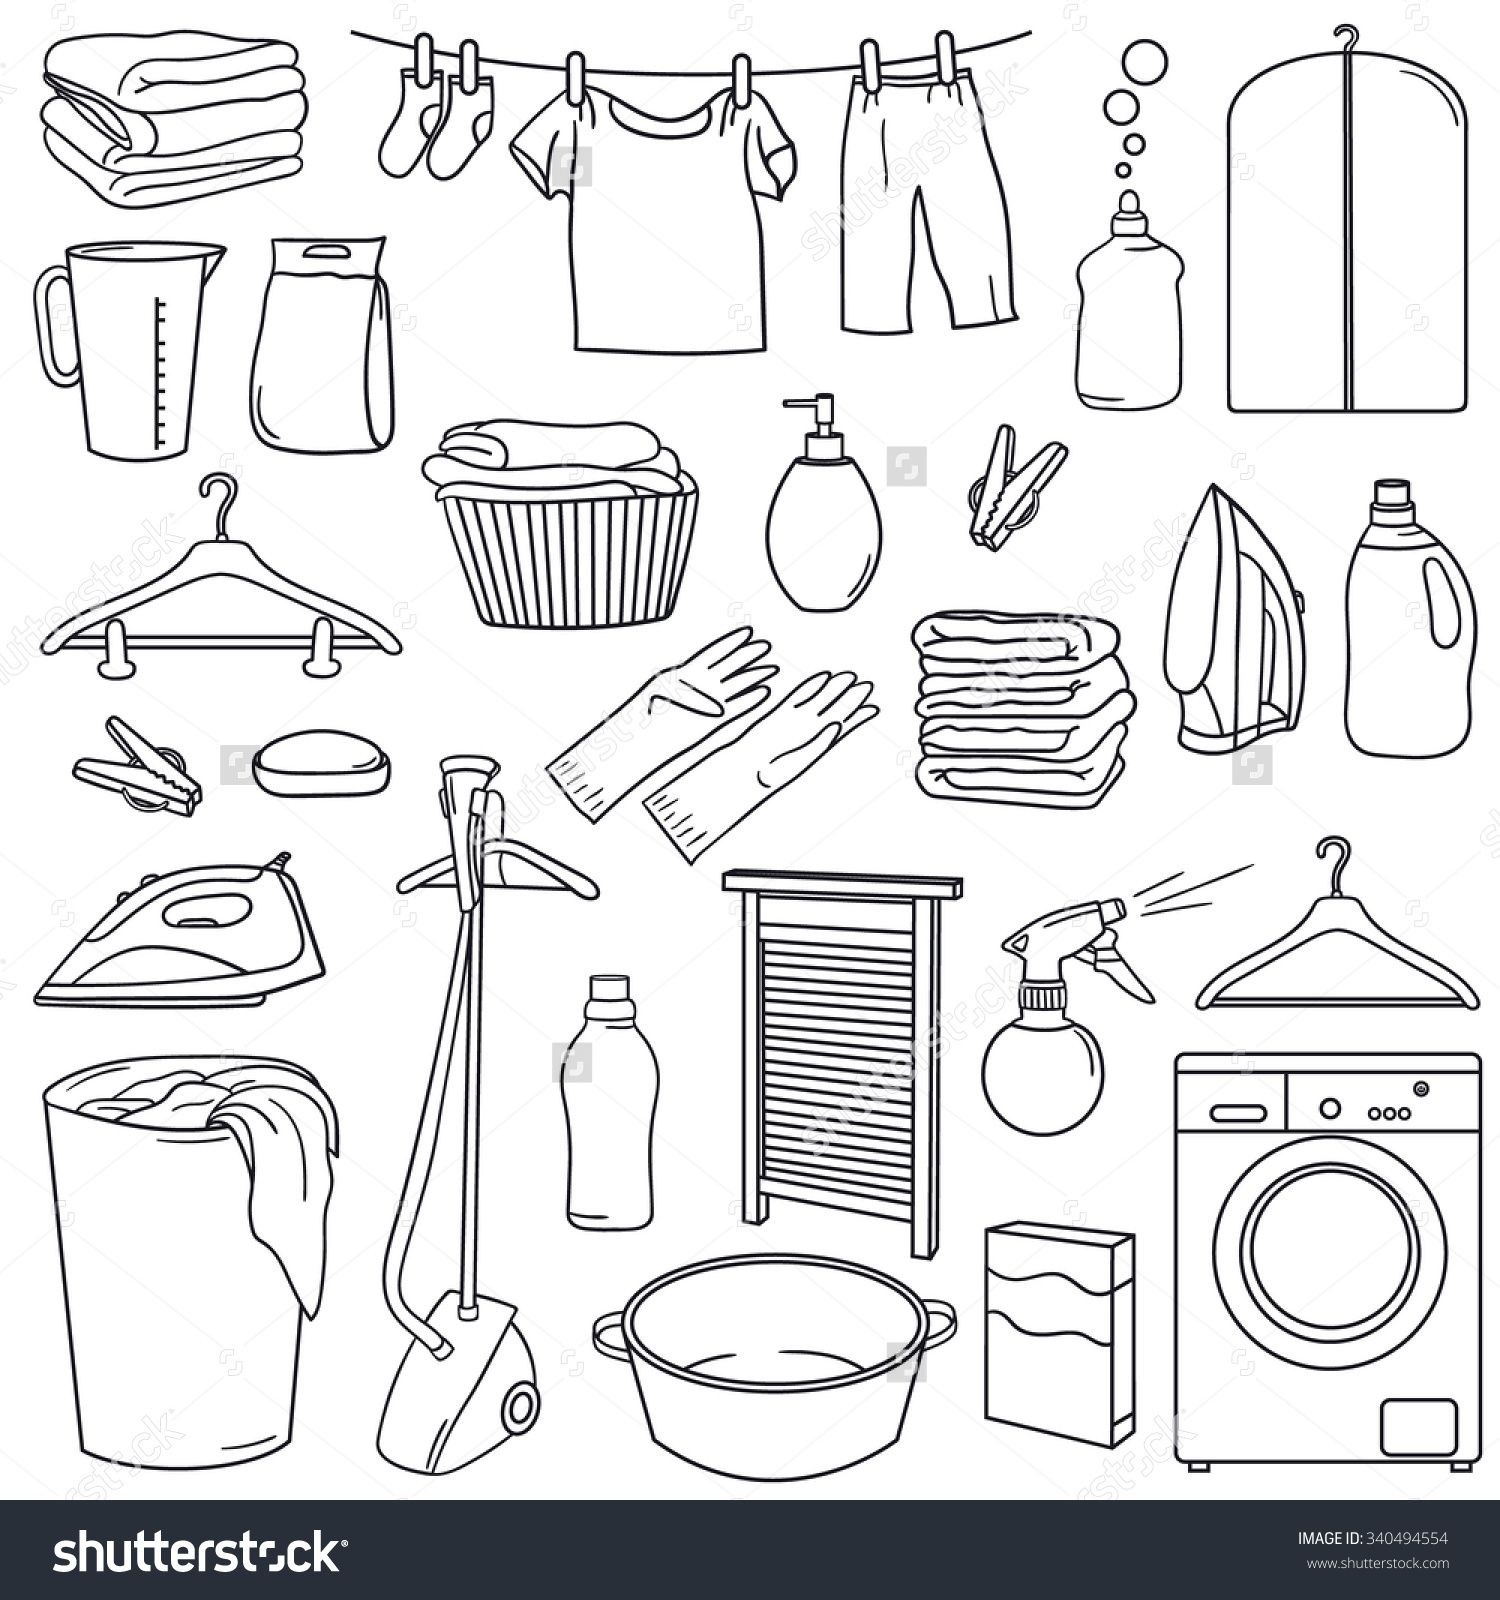 Image result for washing clothes doodle